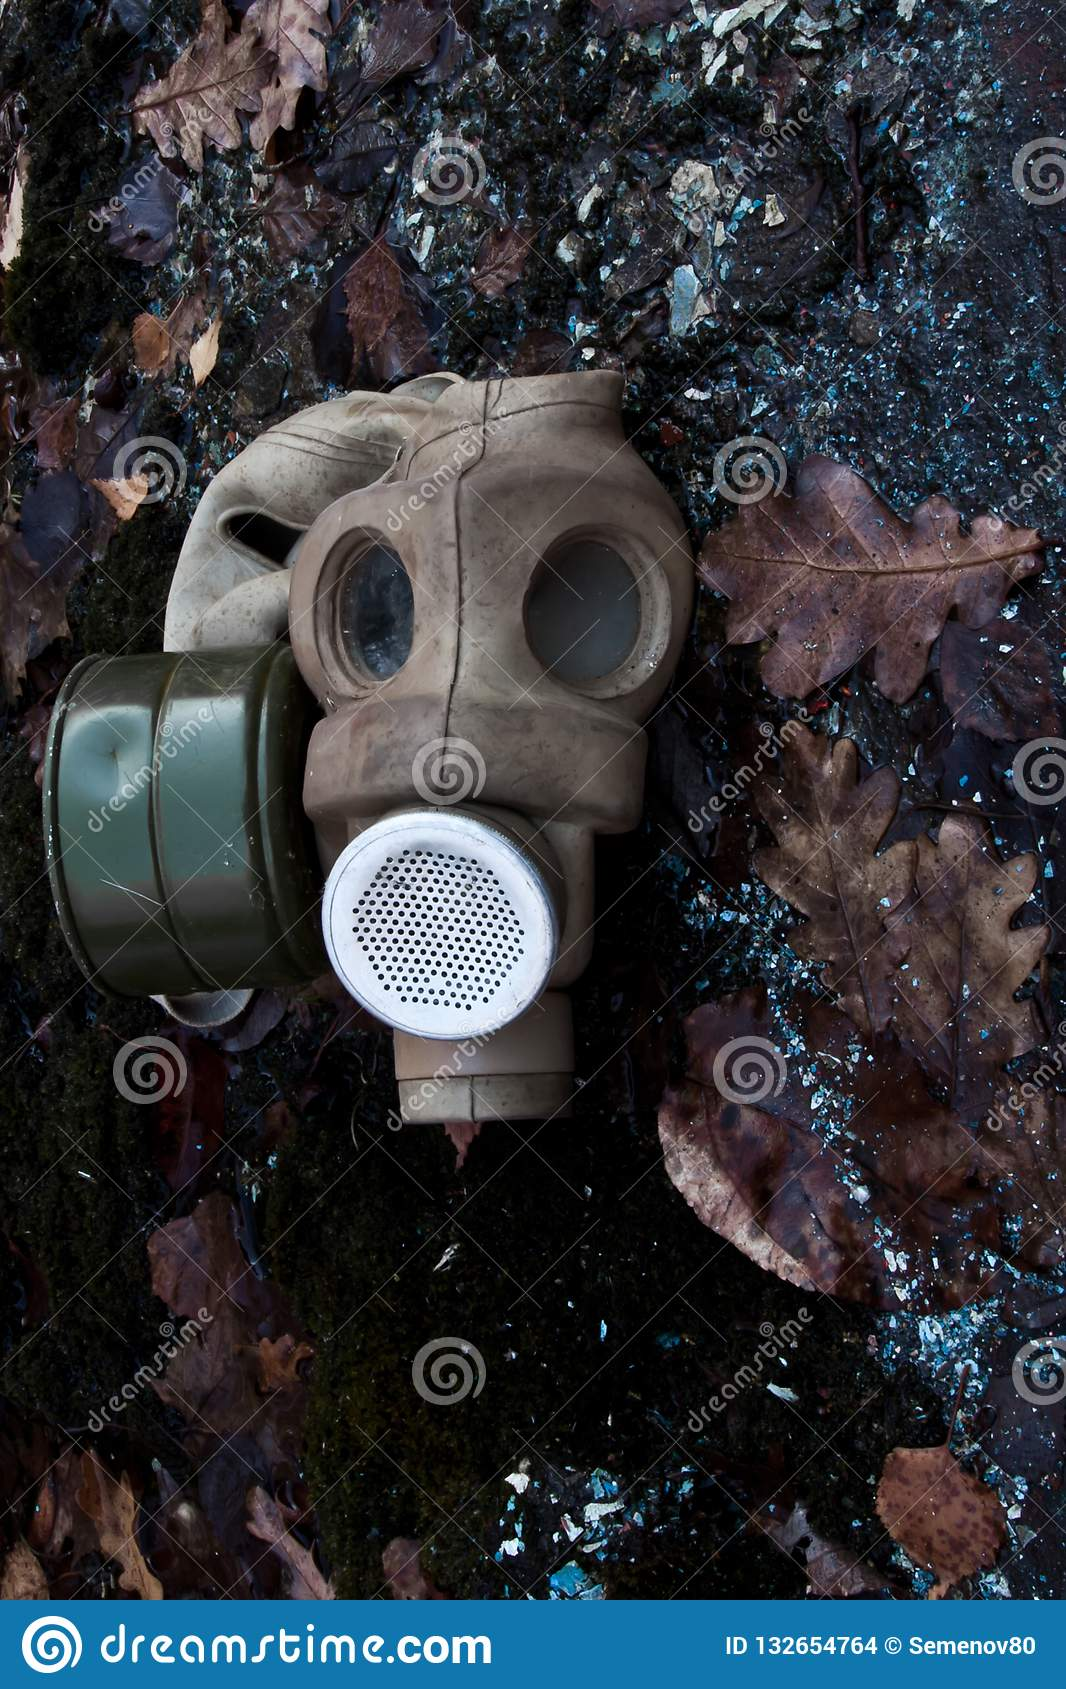 An Old Gas Mask Lies Among Dead Foliage, A Symbol Of The